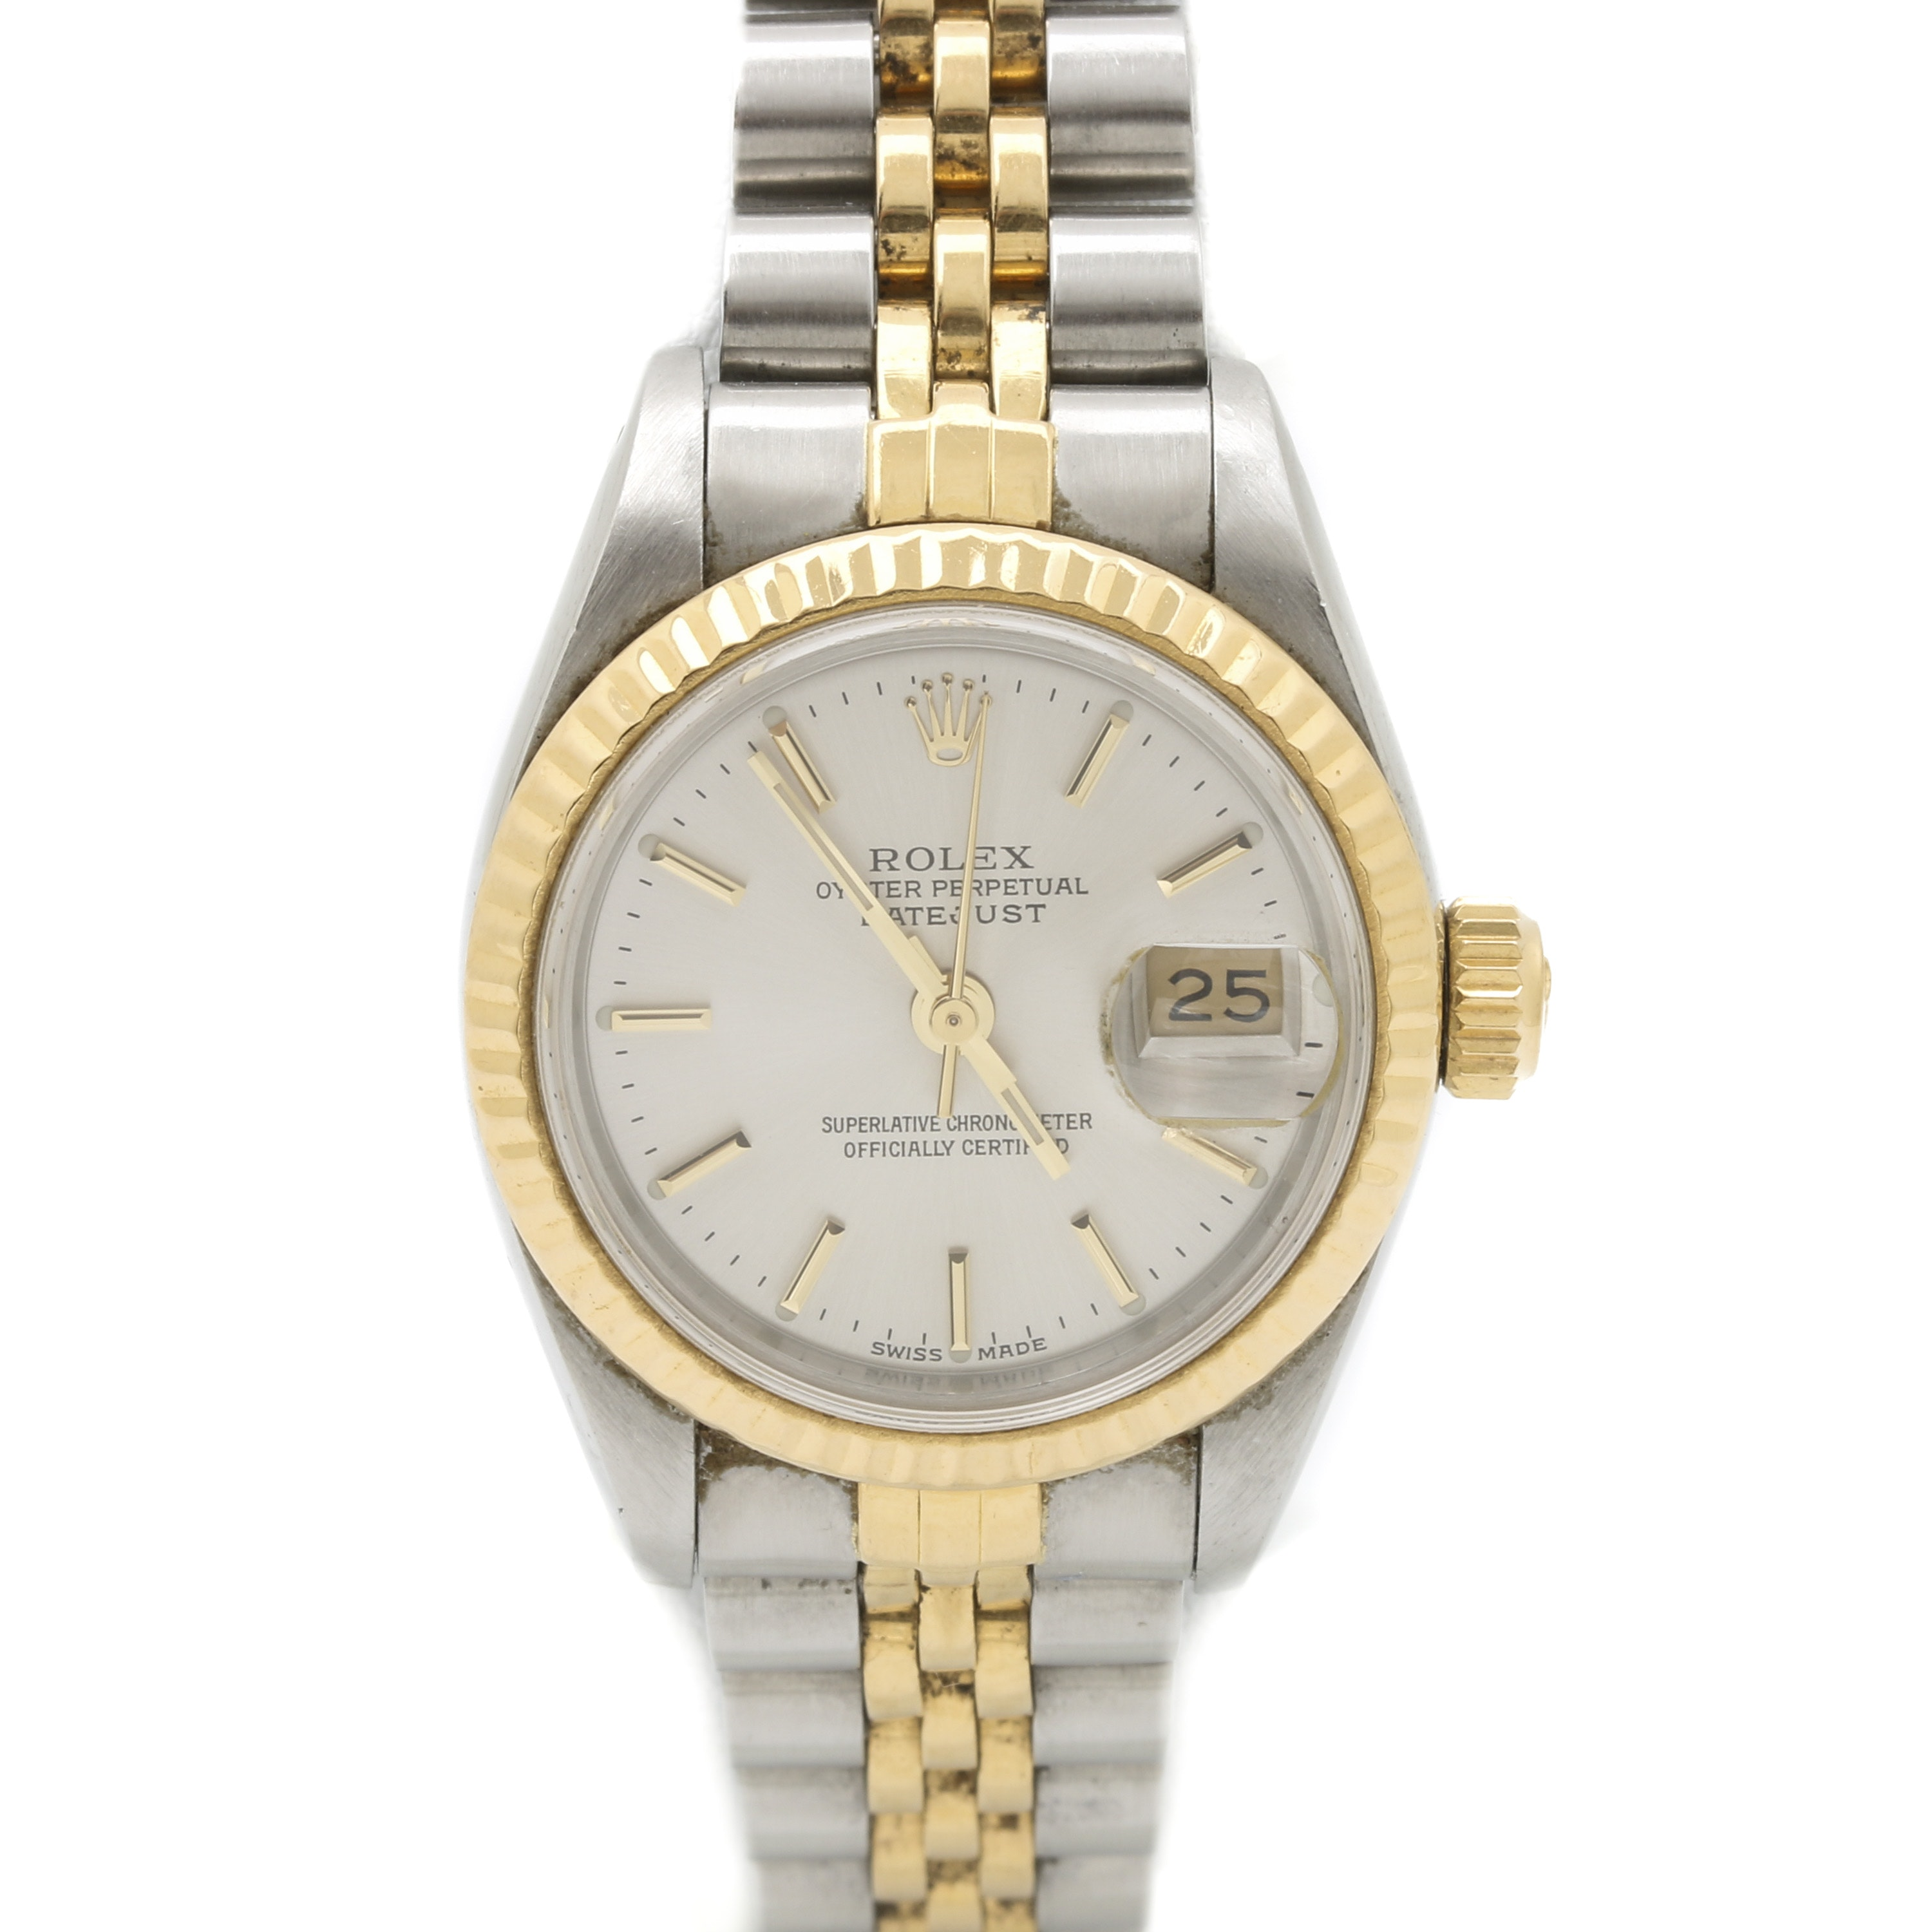 Rolex Oyster Perpetual Date Just 18K Yellow Gold and Stainless Steel Wristwatch